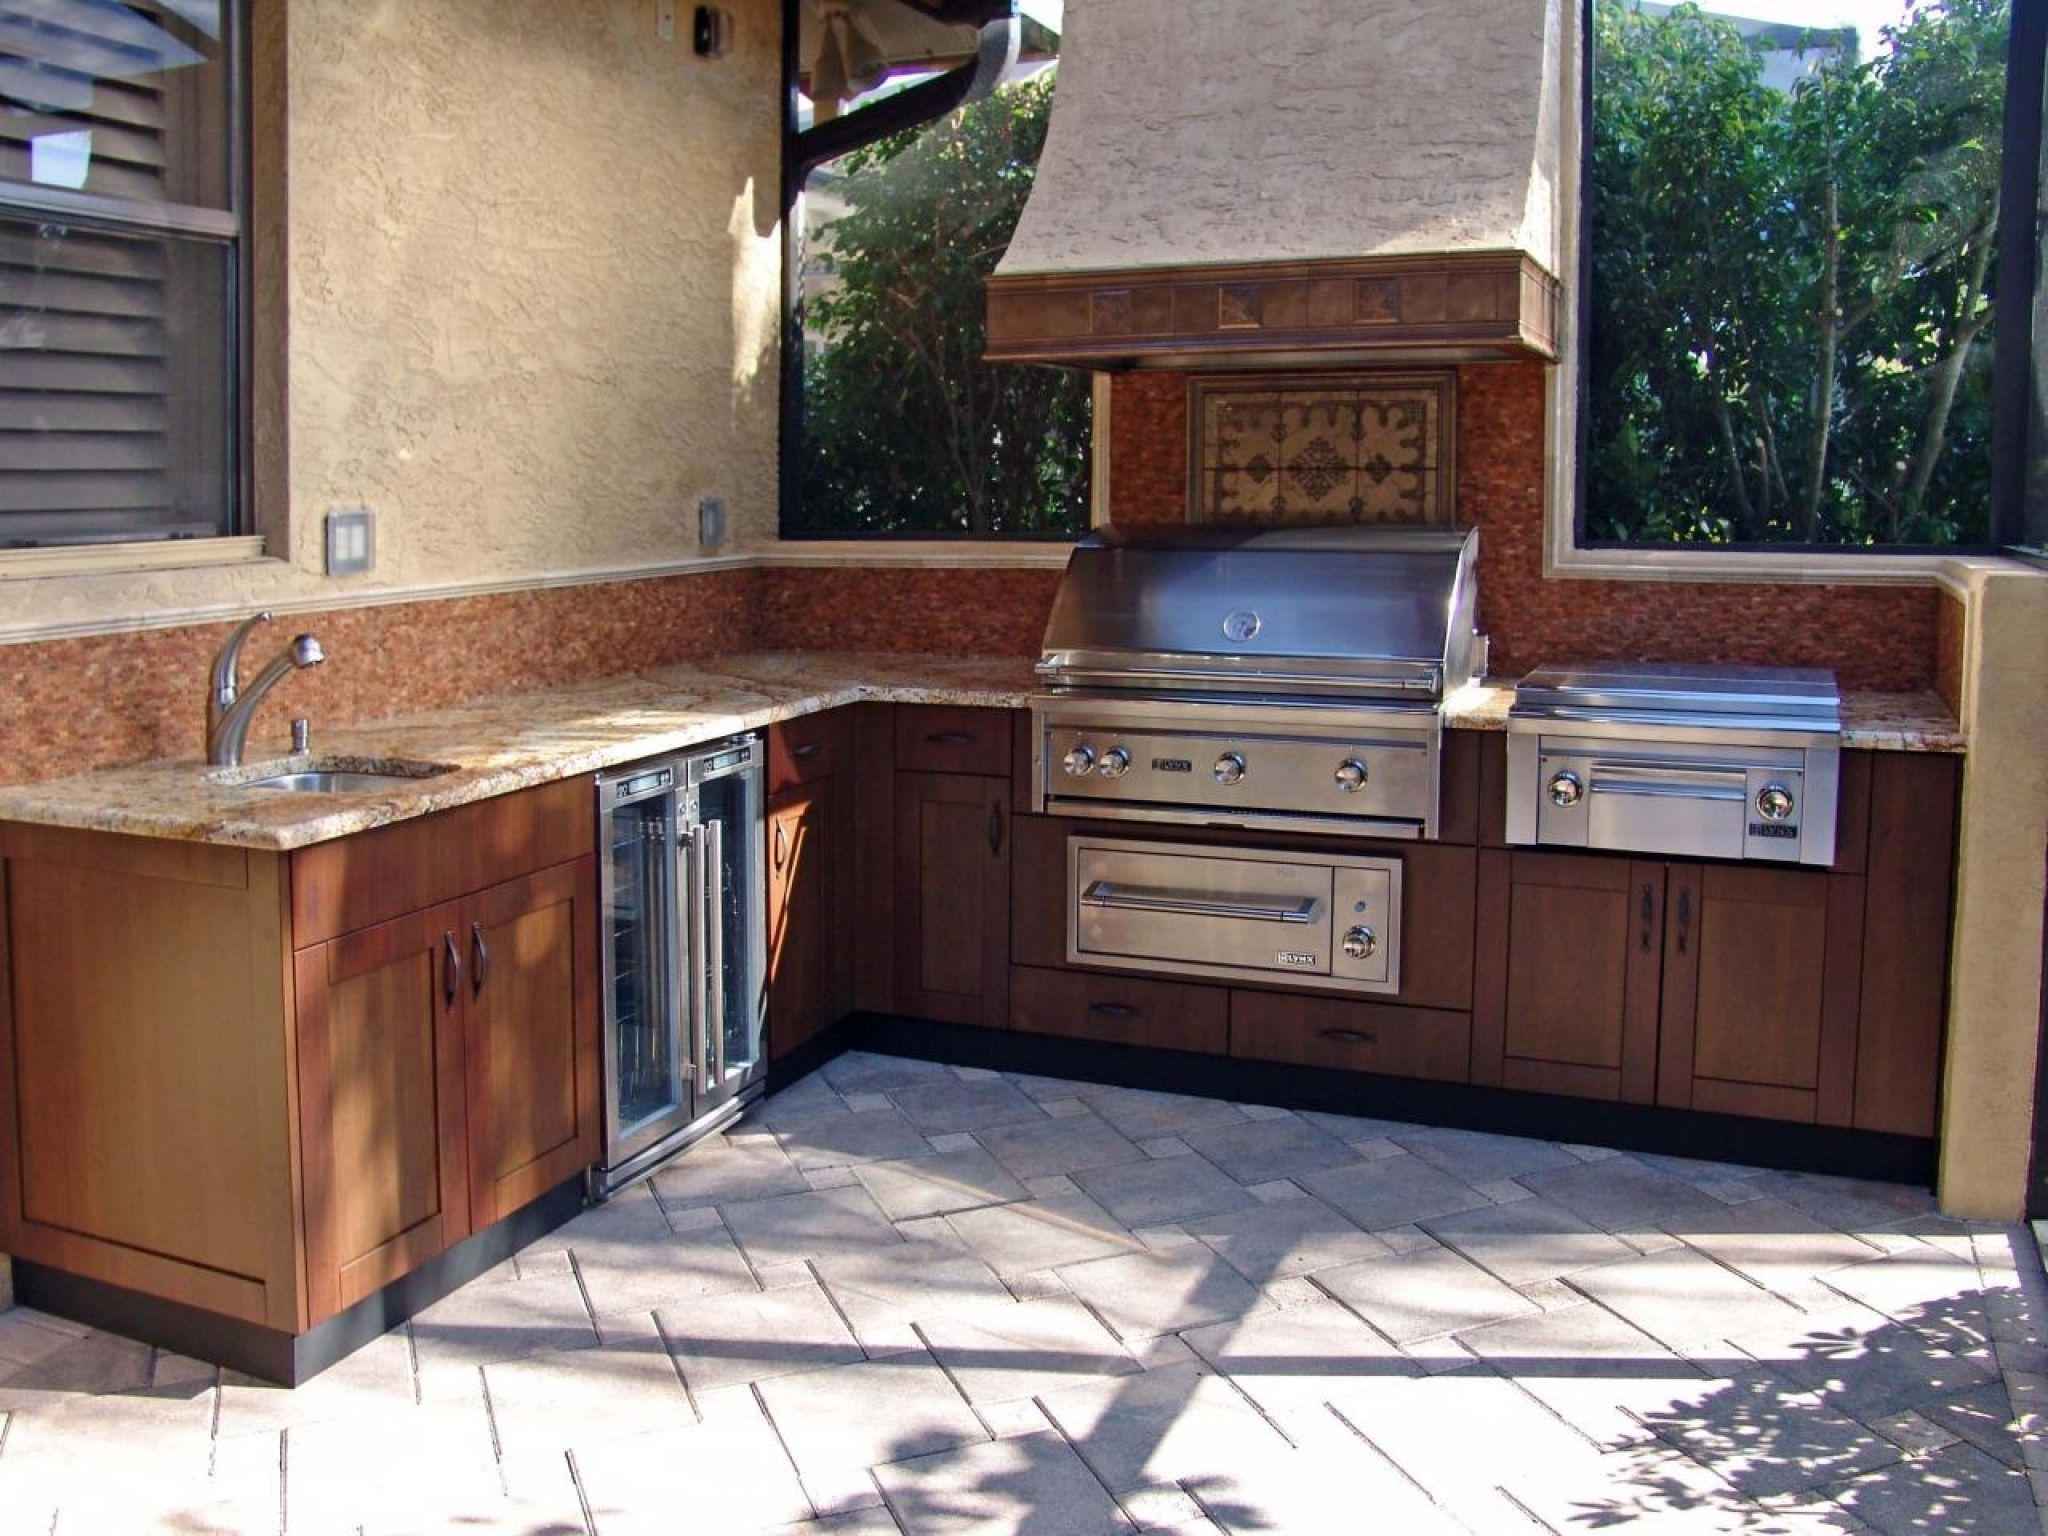 Outdoor bbq kitchen cabinets kitchen ideas for small kitchens